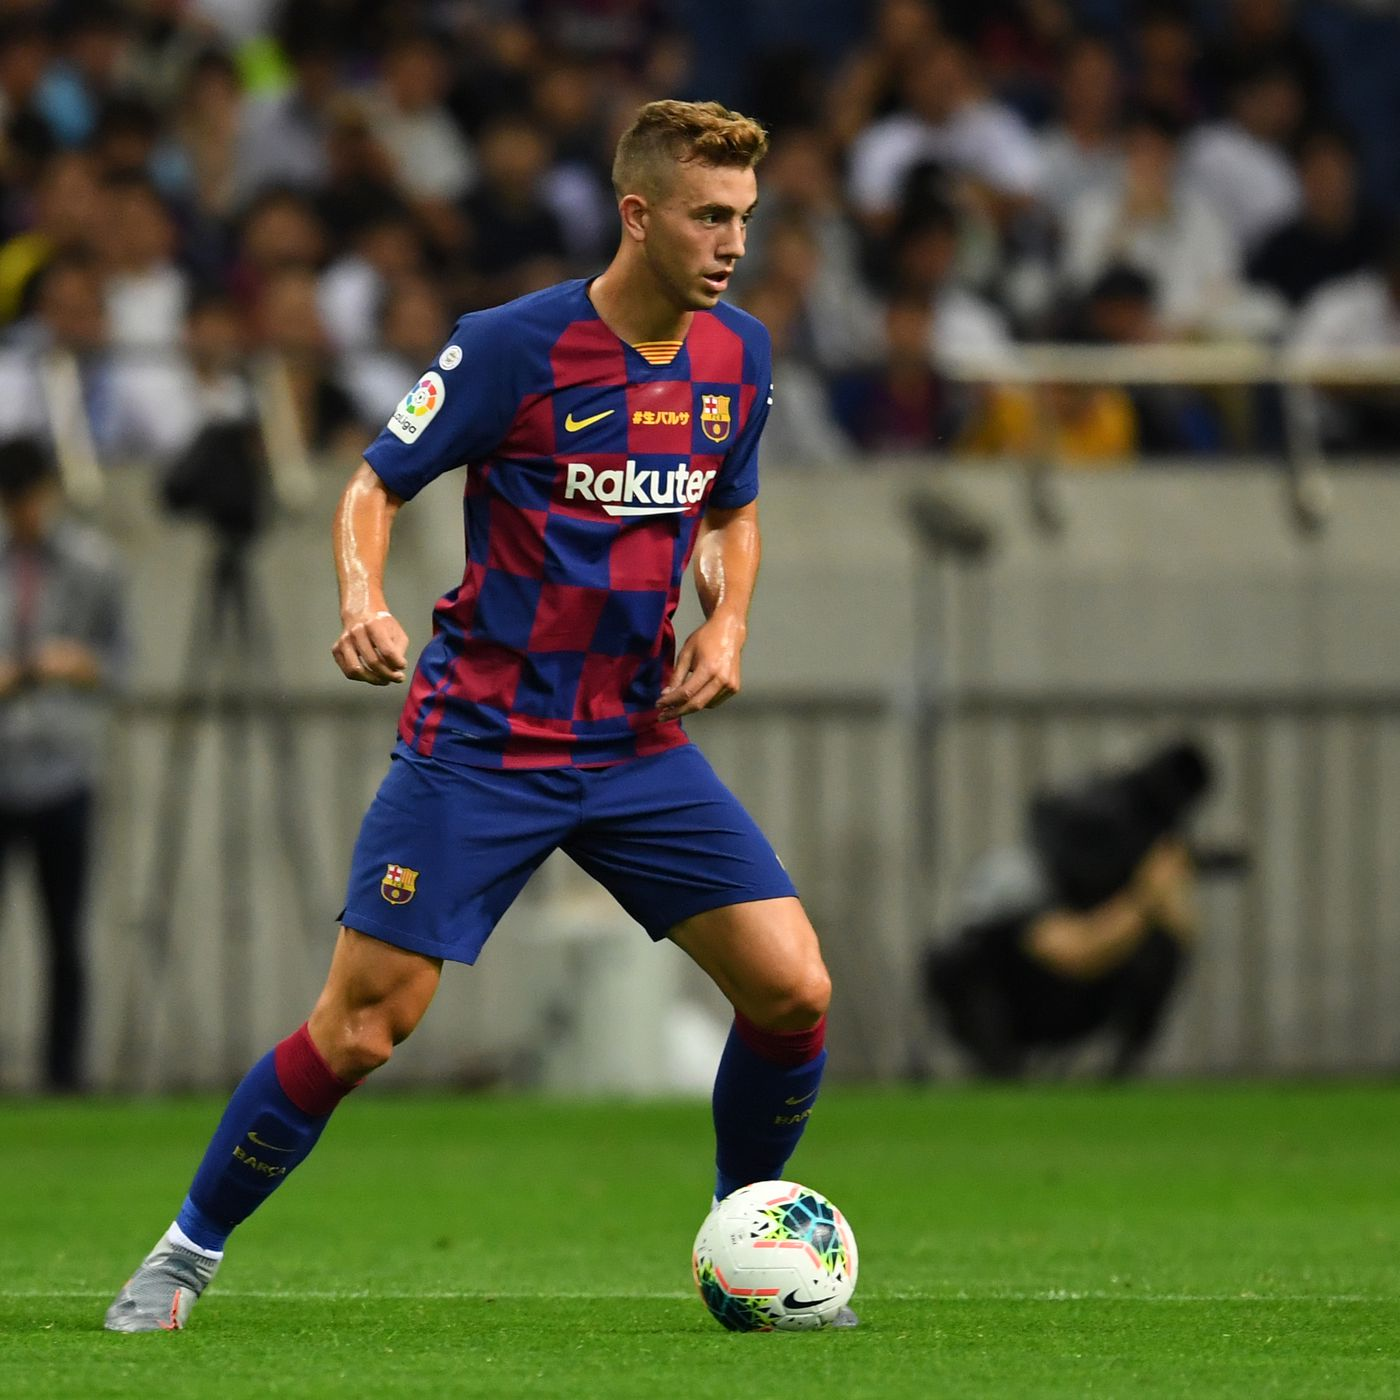 Oriol-Busquets-Hairstyles2